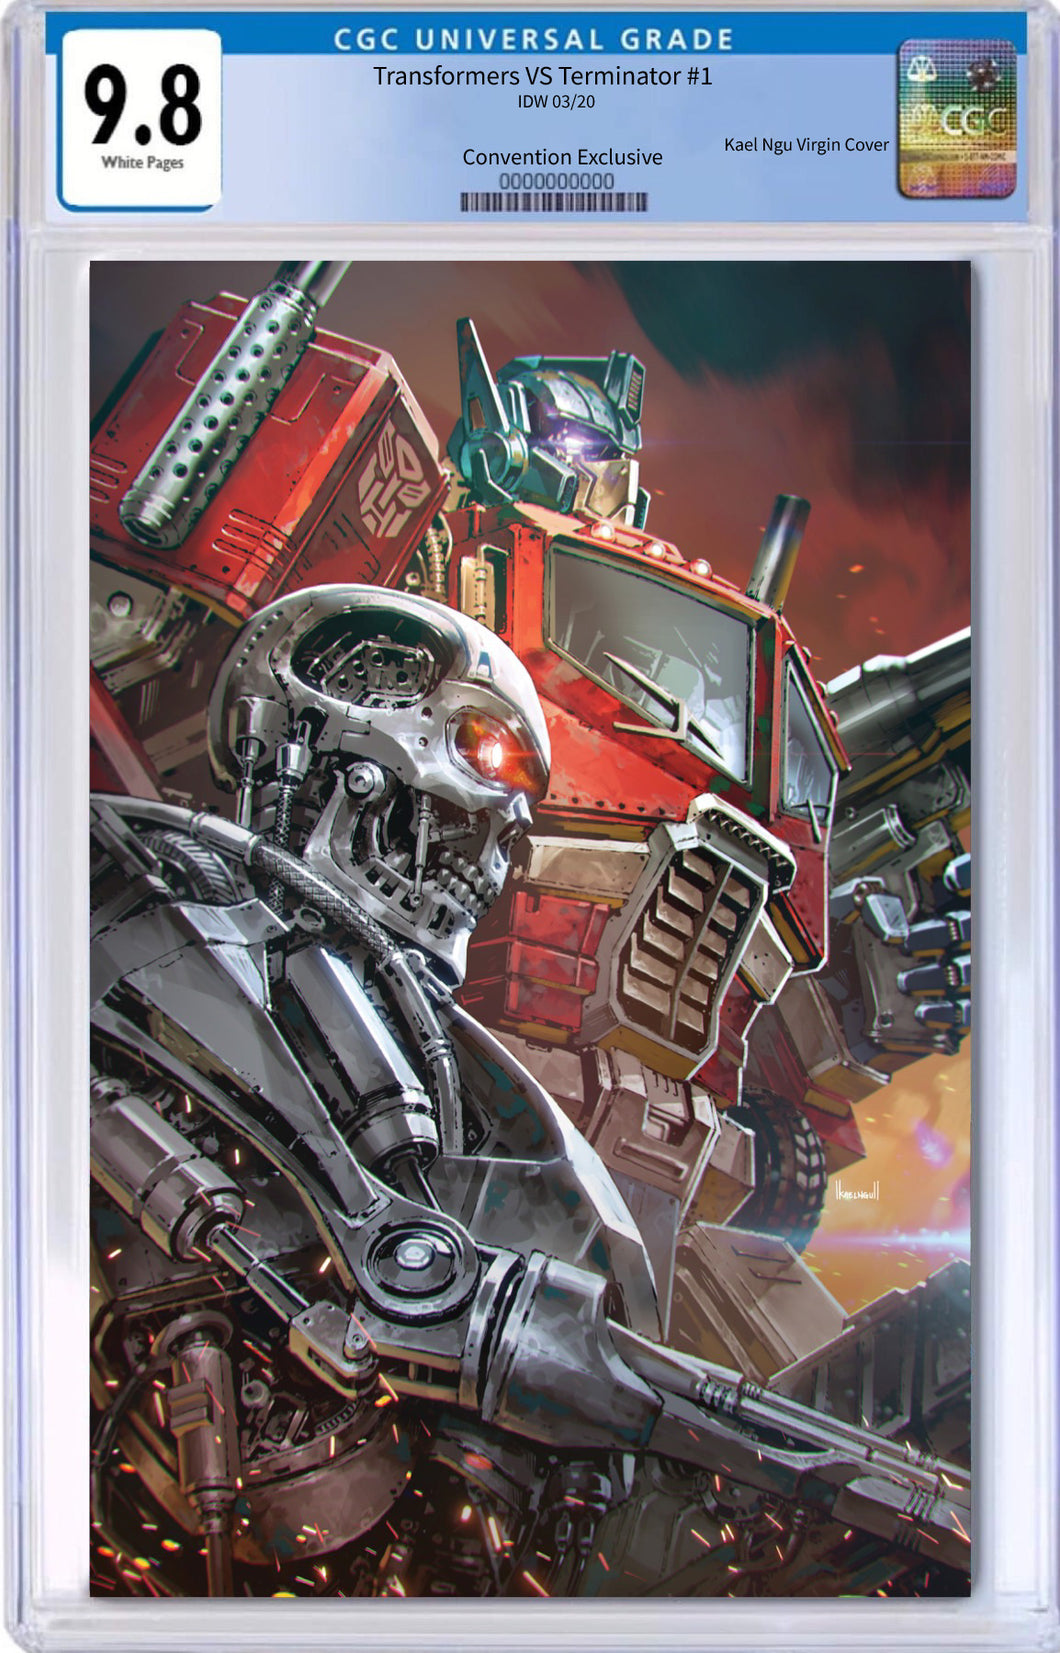 TRANSFORMERS VS TERMINATOR #1 KAEL NGU CONVENTION EXCLUSIVE LIMITED TO 600 COPIES CGC 9.8